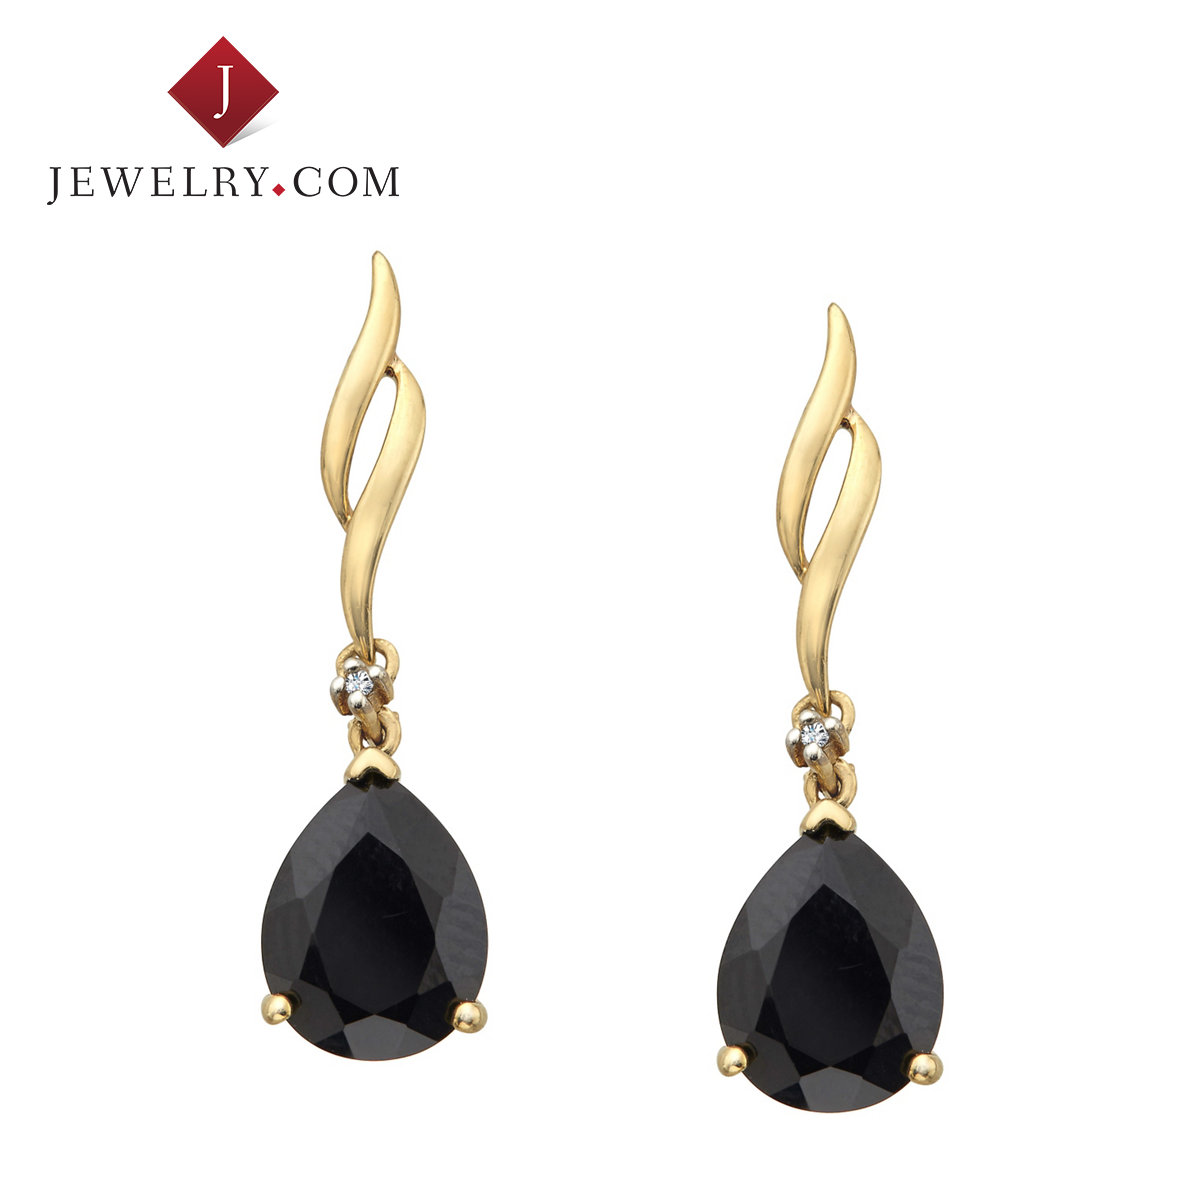 Jewelry.com official onxy k gold diamond jewelry fashion earrings elegant lady mature charm